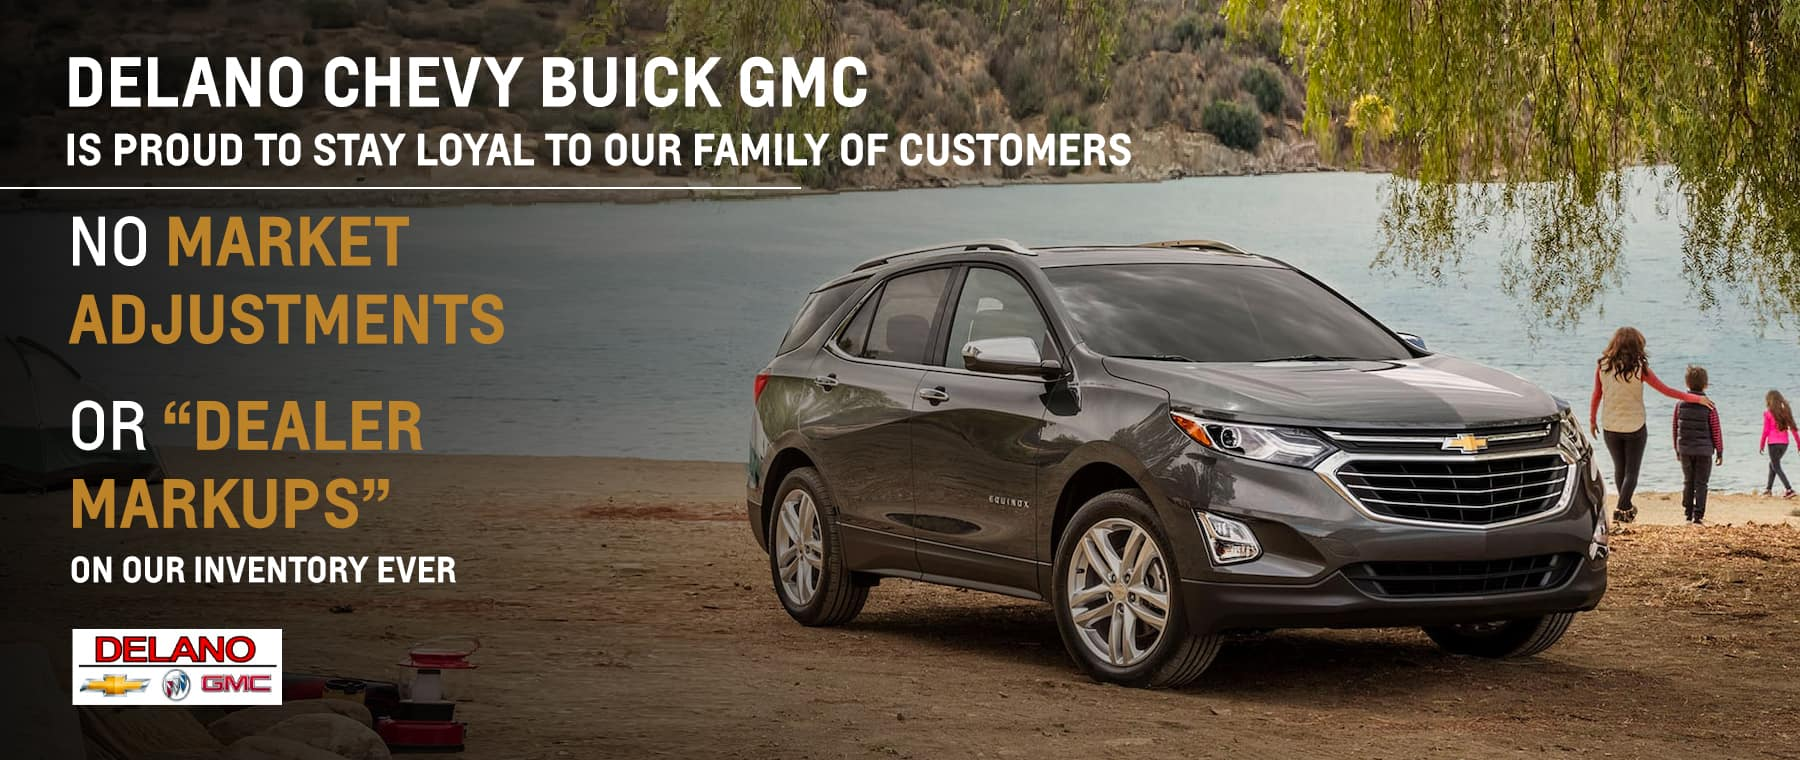 Delano Chevy Buick GMC is proud to stay loyal to our family of customers!